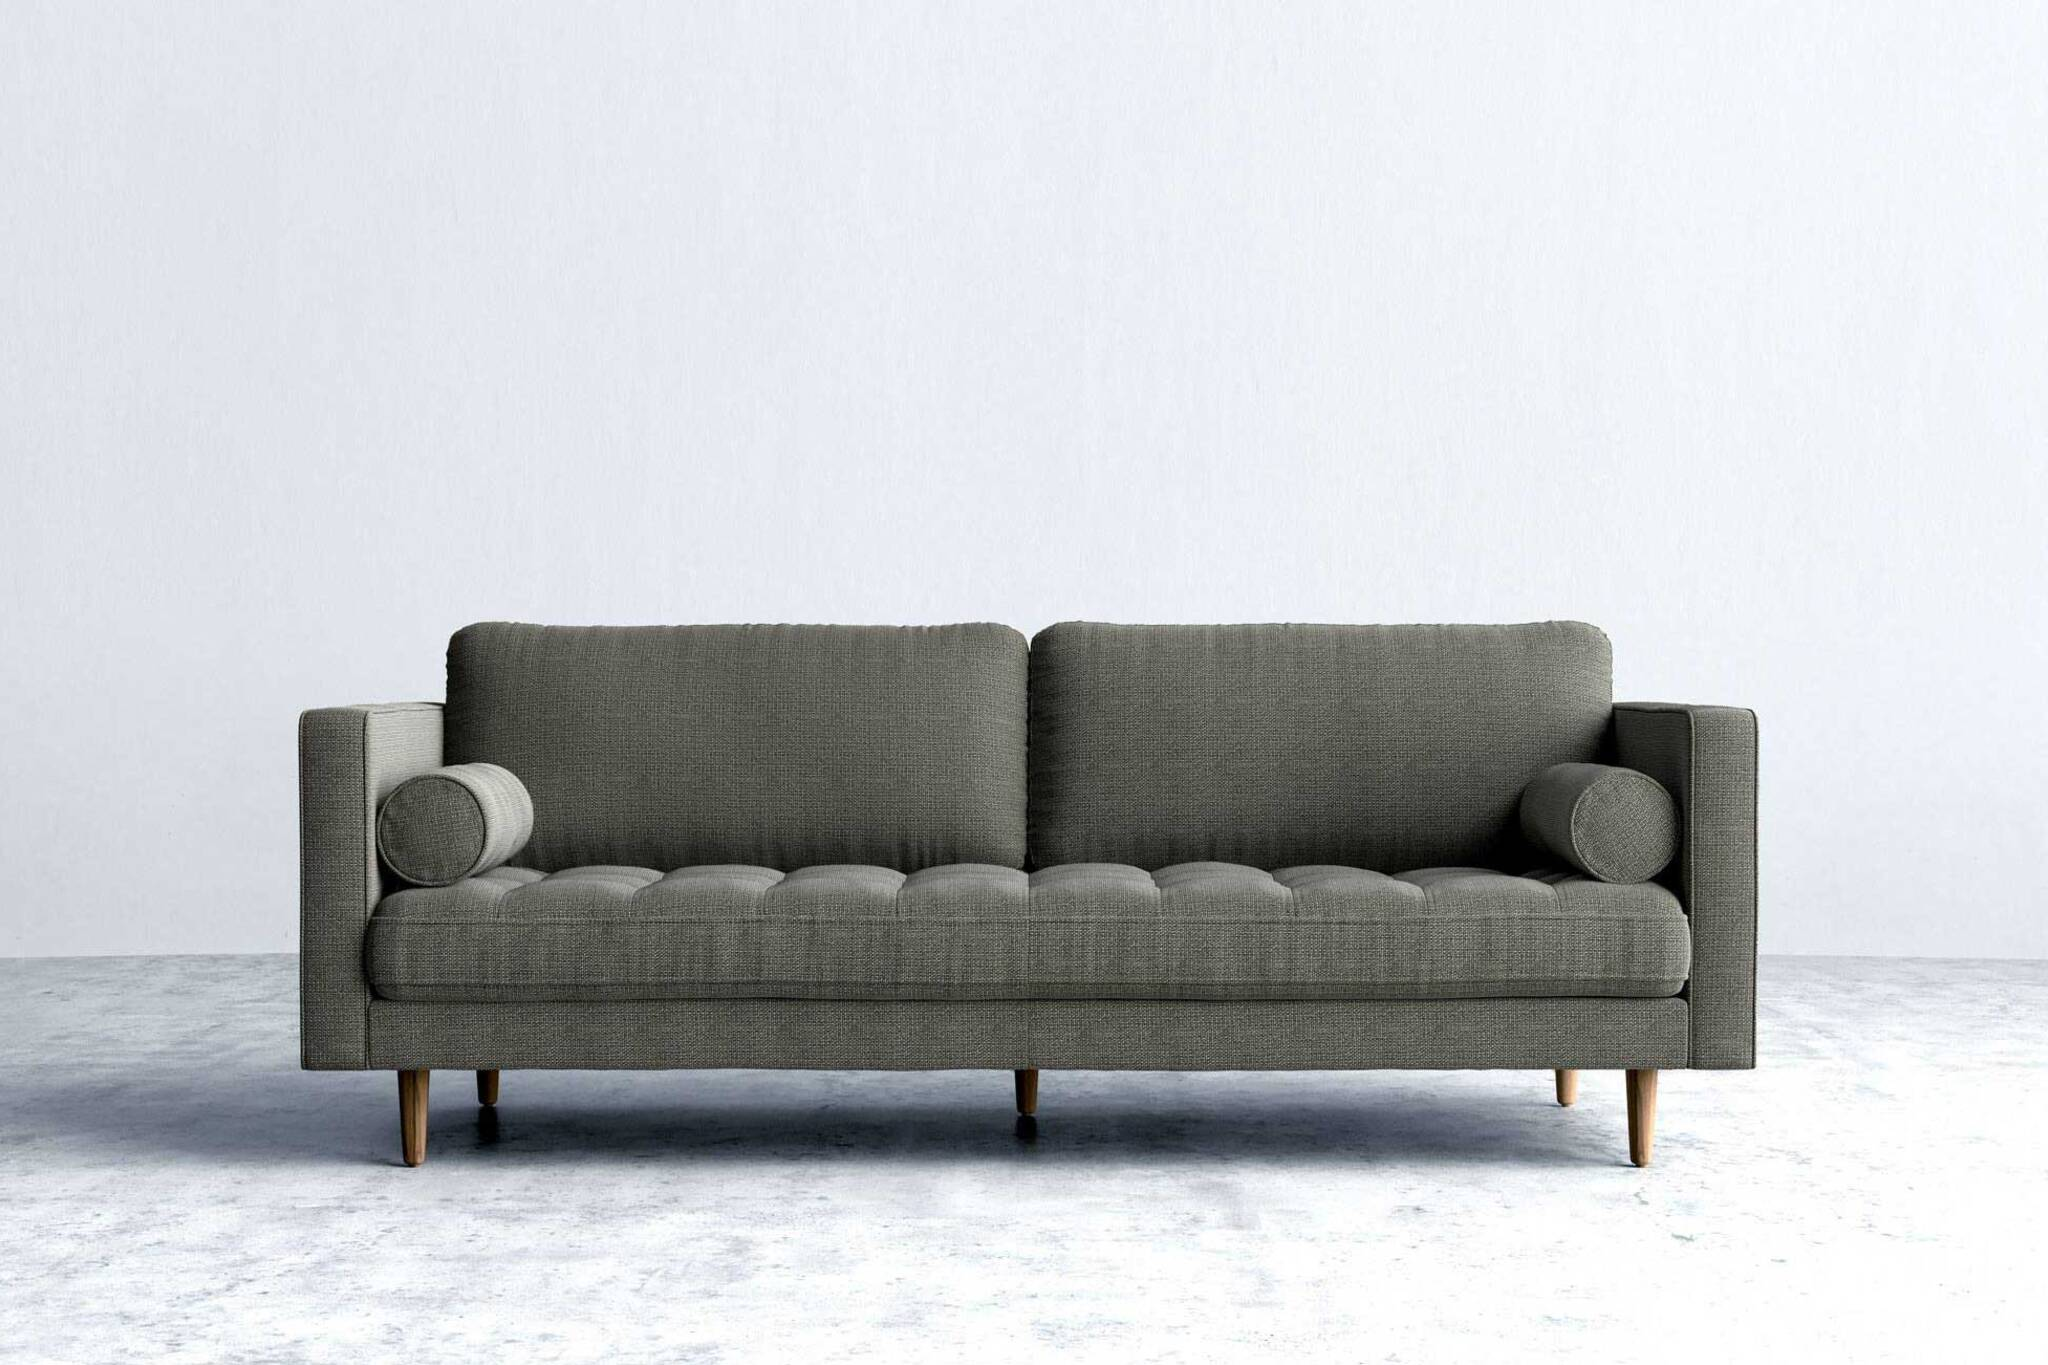 Best cheap sofas toronto sofa ideas for Best place to find affordable furniture